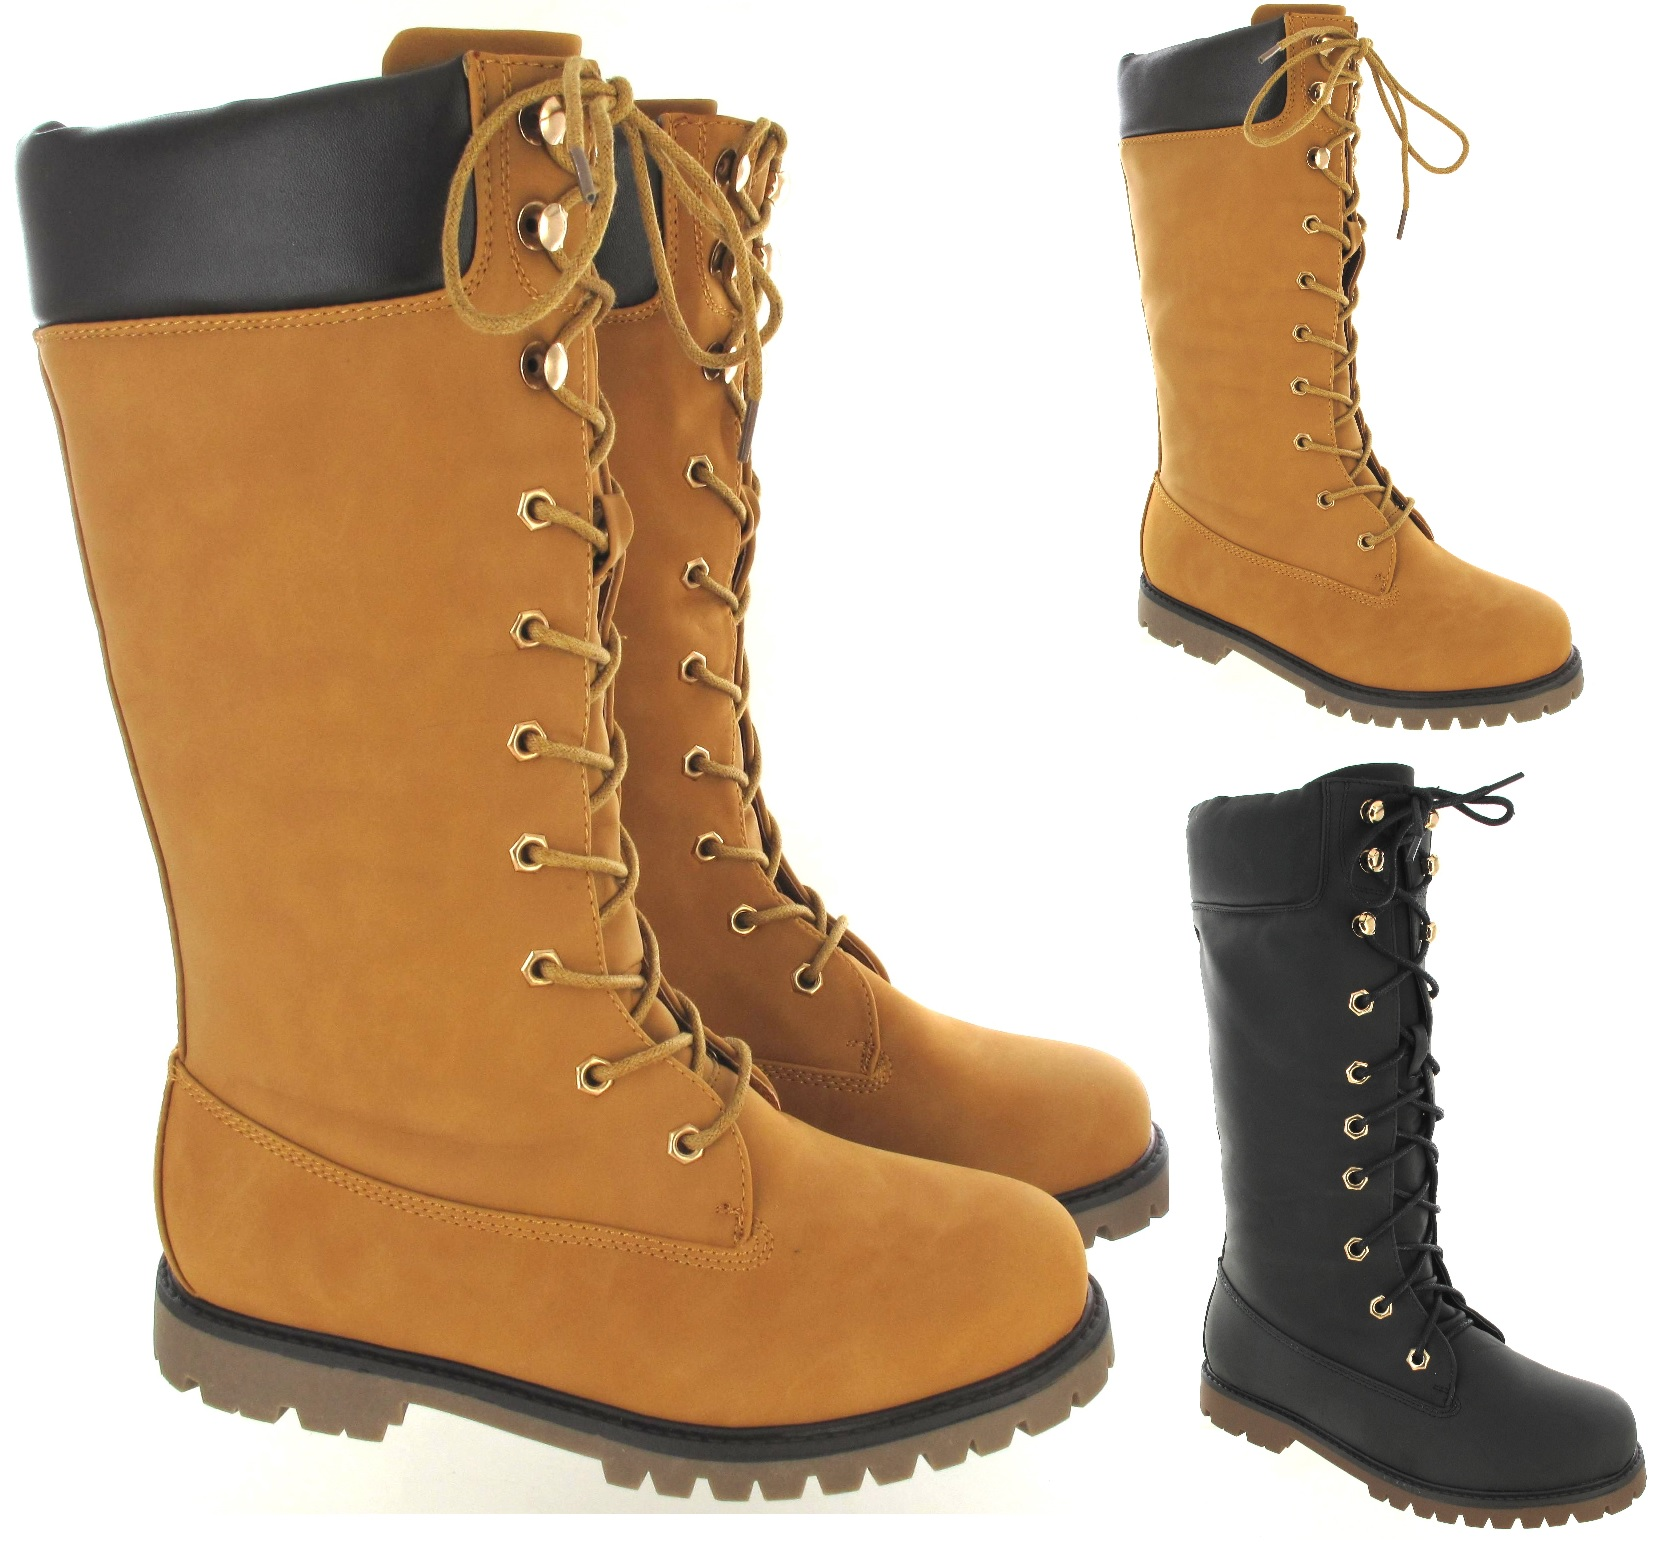 2a85985d3 Details about WOMENS LADIES ARMY LACE UP FLAT COMBAT BIKER WIDE CALF KNEE  HIGH WINTER BOOTS SZ